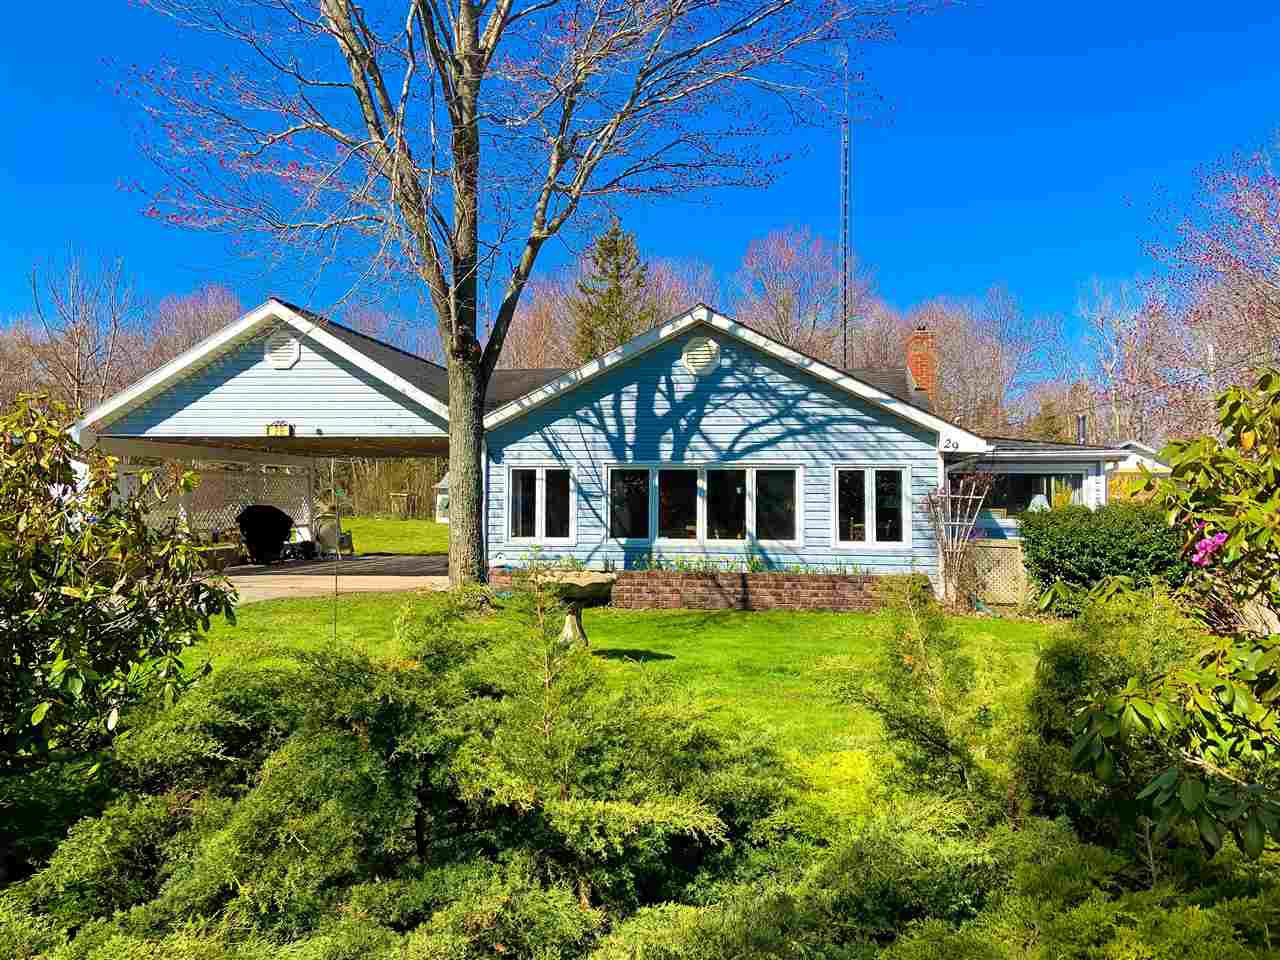 Main Photo: 29 BAYVIEW Drive in North Grand Pre: 404-Kings County Residential for sale (Annapolis Valley)  : MLS®# 202008225